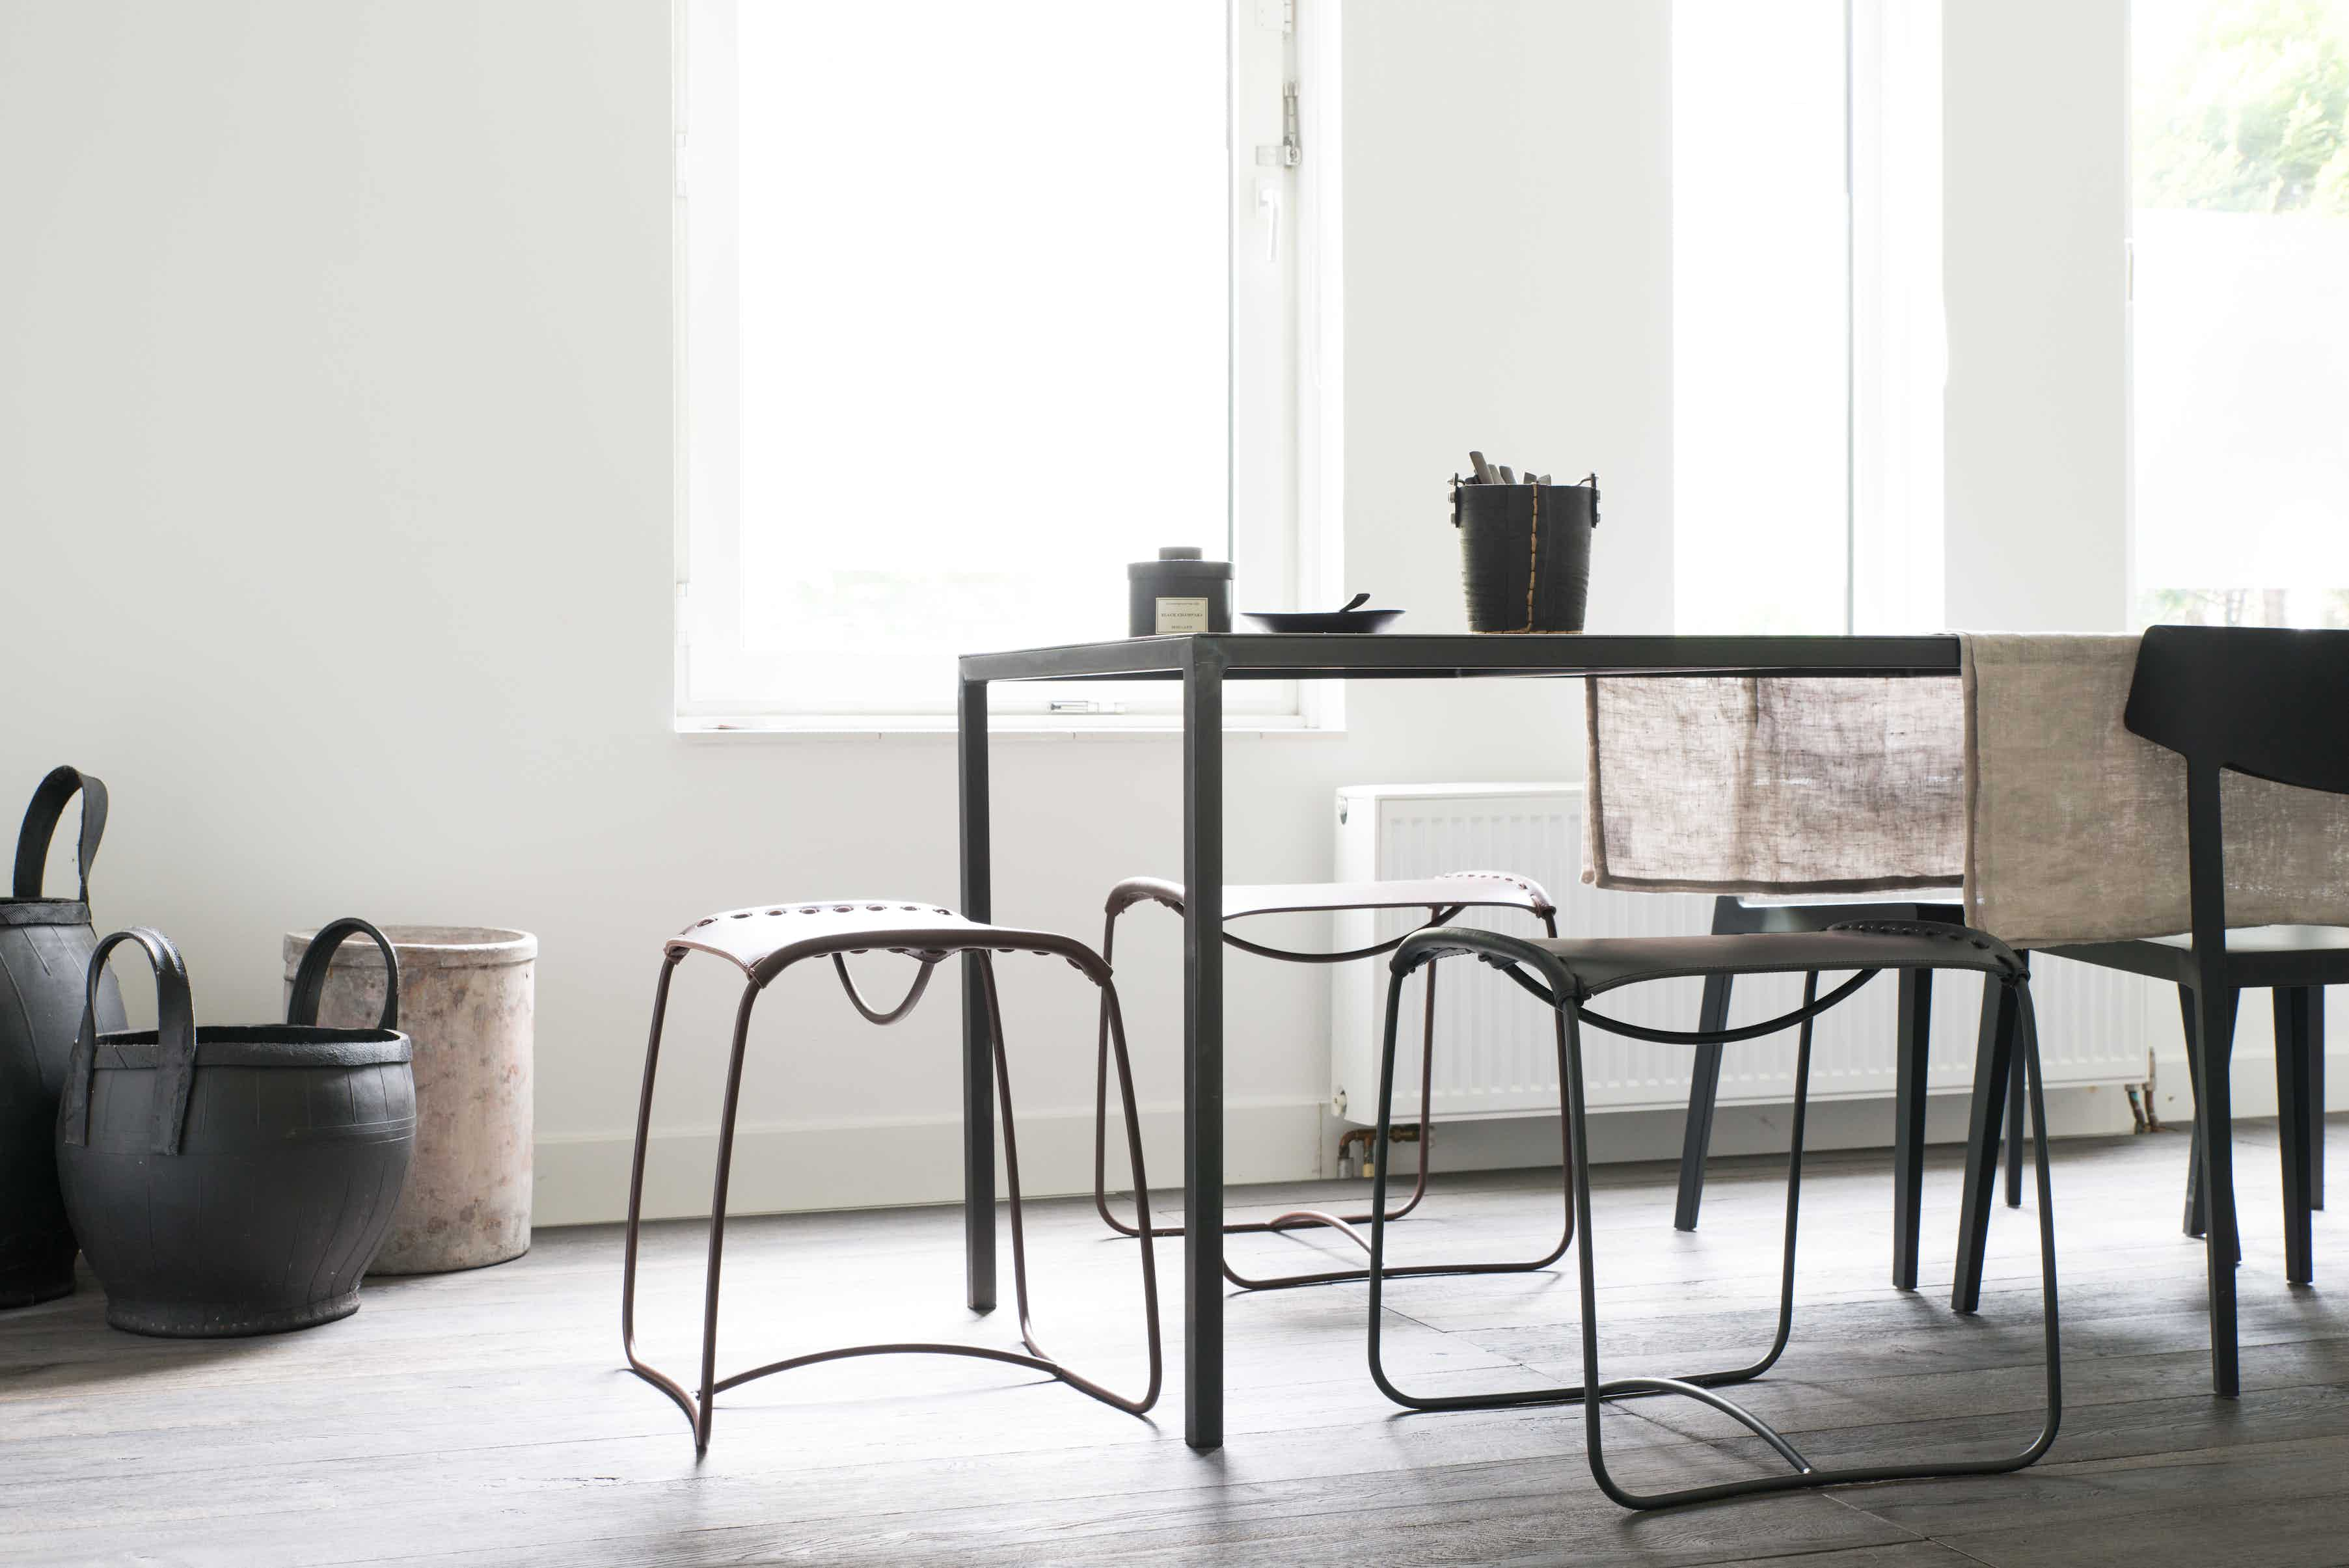 The Perching Stools are family of comfortable stools for flexible use, ideal for our healthier, mobile lives. Designed by Ilse Crawford, they feature hand-stitched leather saddles over a simple wire frame and are perfect for occasional seating.